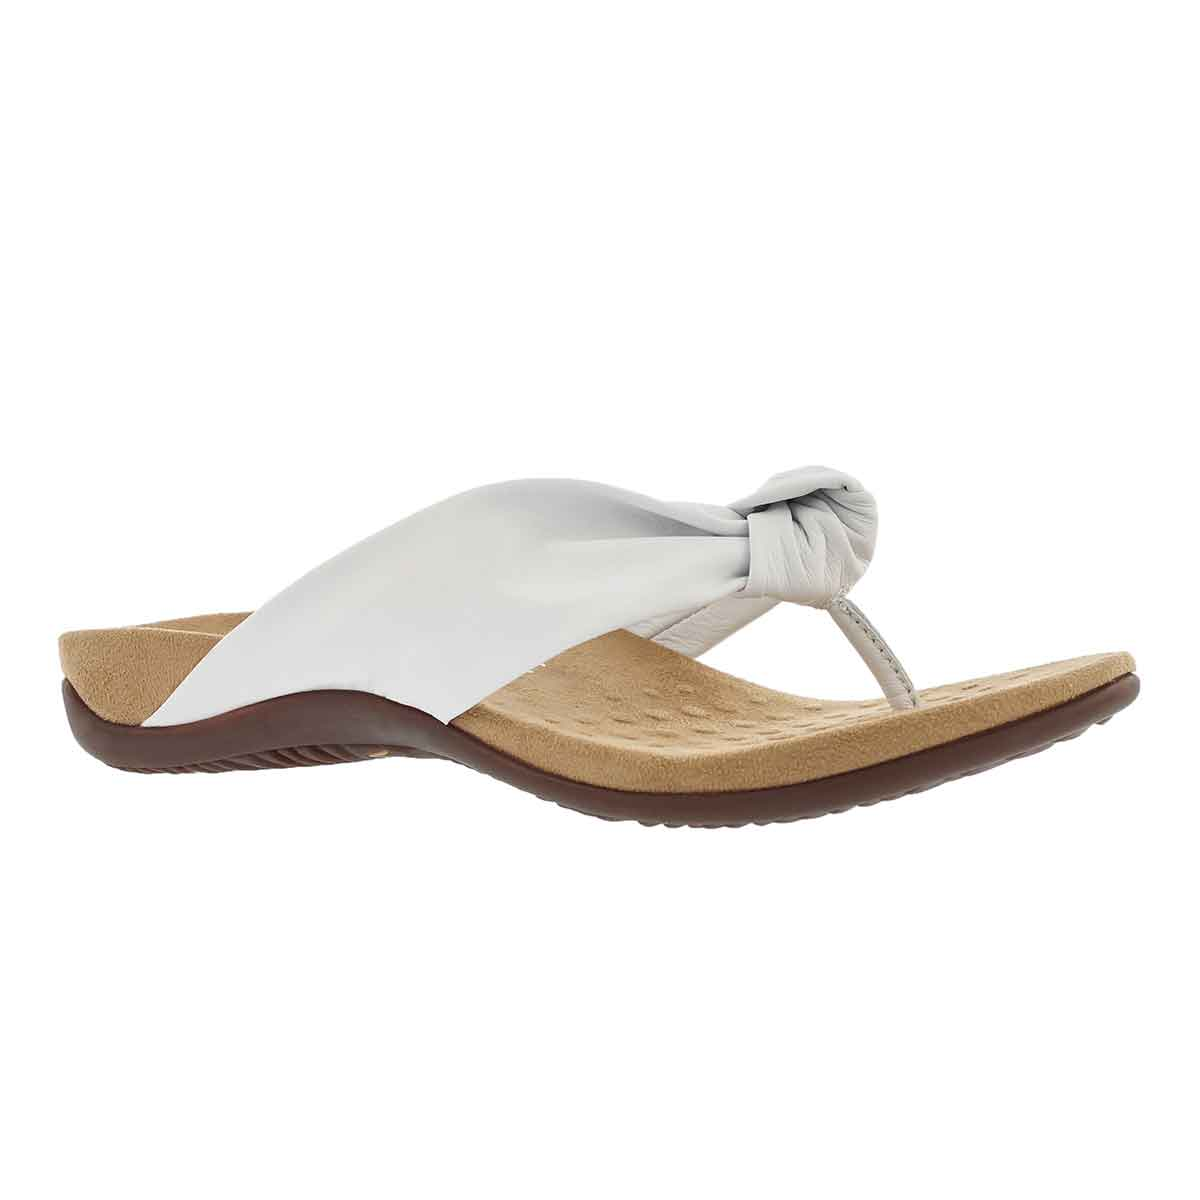 Women's PIPPA white arch support thong sandals